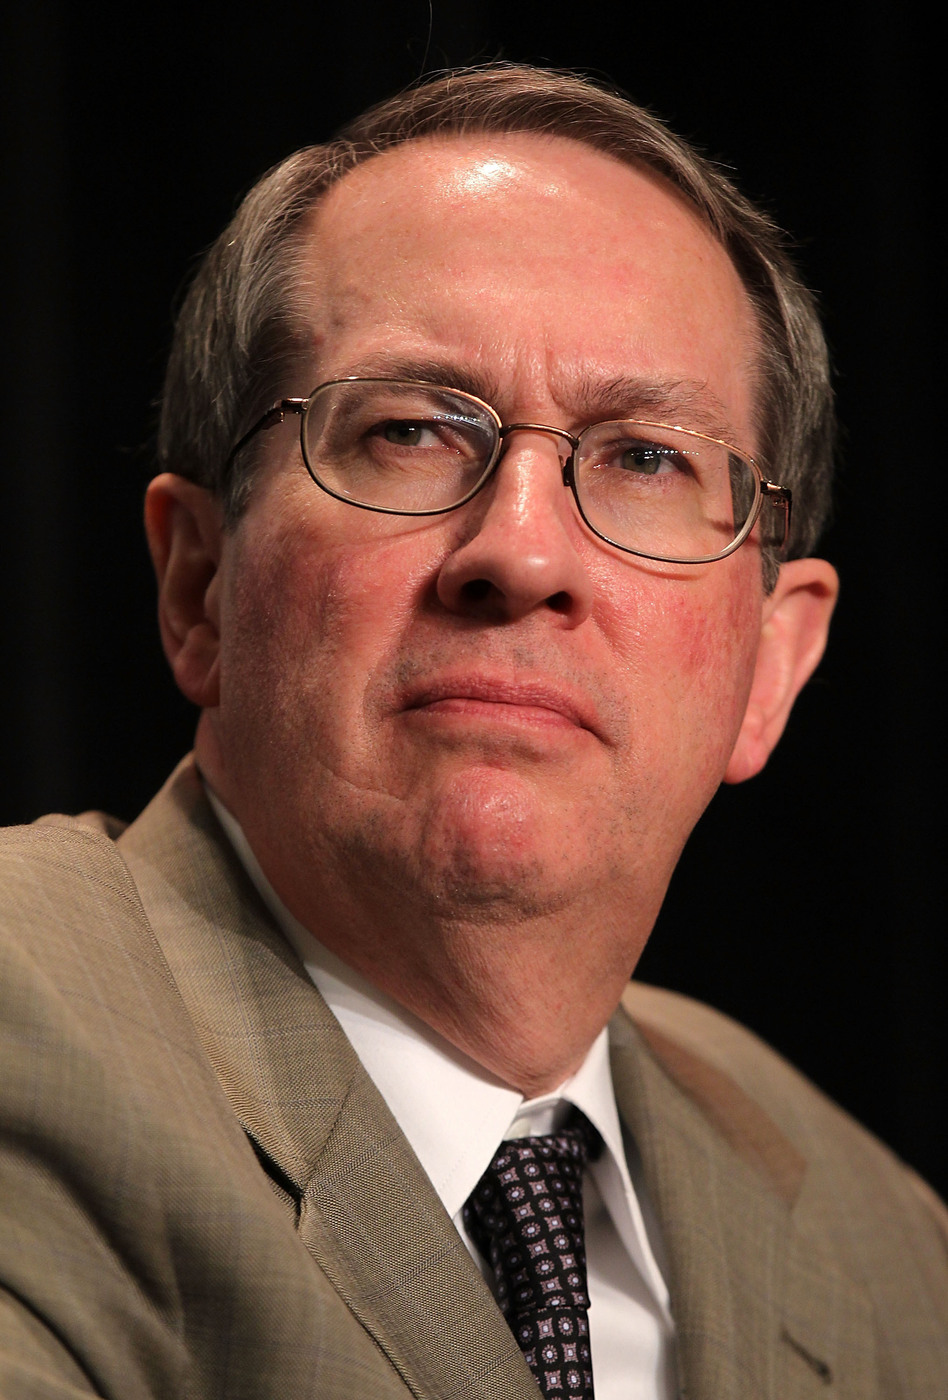 Rep. Bob Goodlatte, R-Va., the new House Judiciary Committee chairman, is a former immigration attorney who has taken a hard line against Democratic proposals.